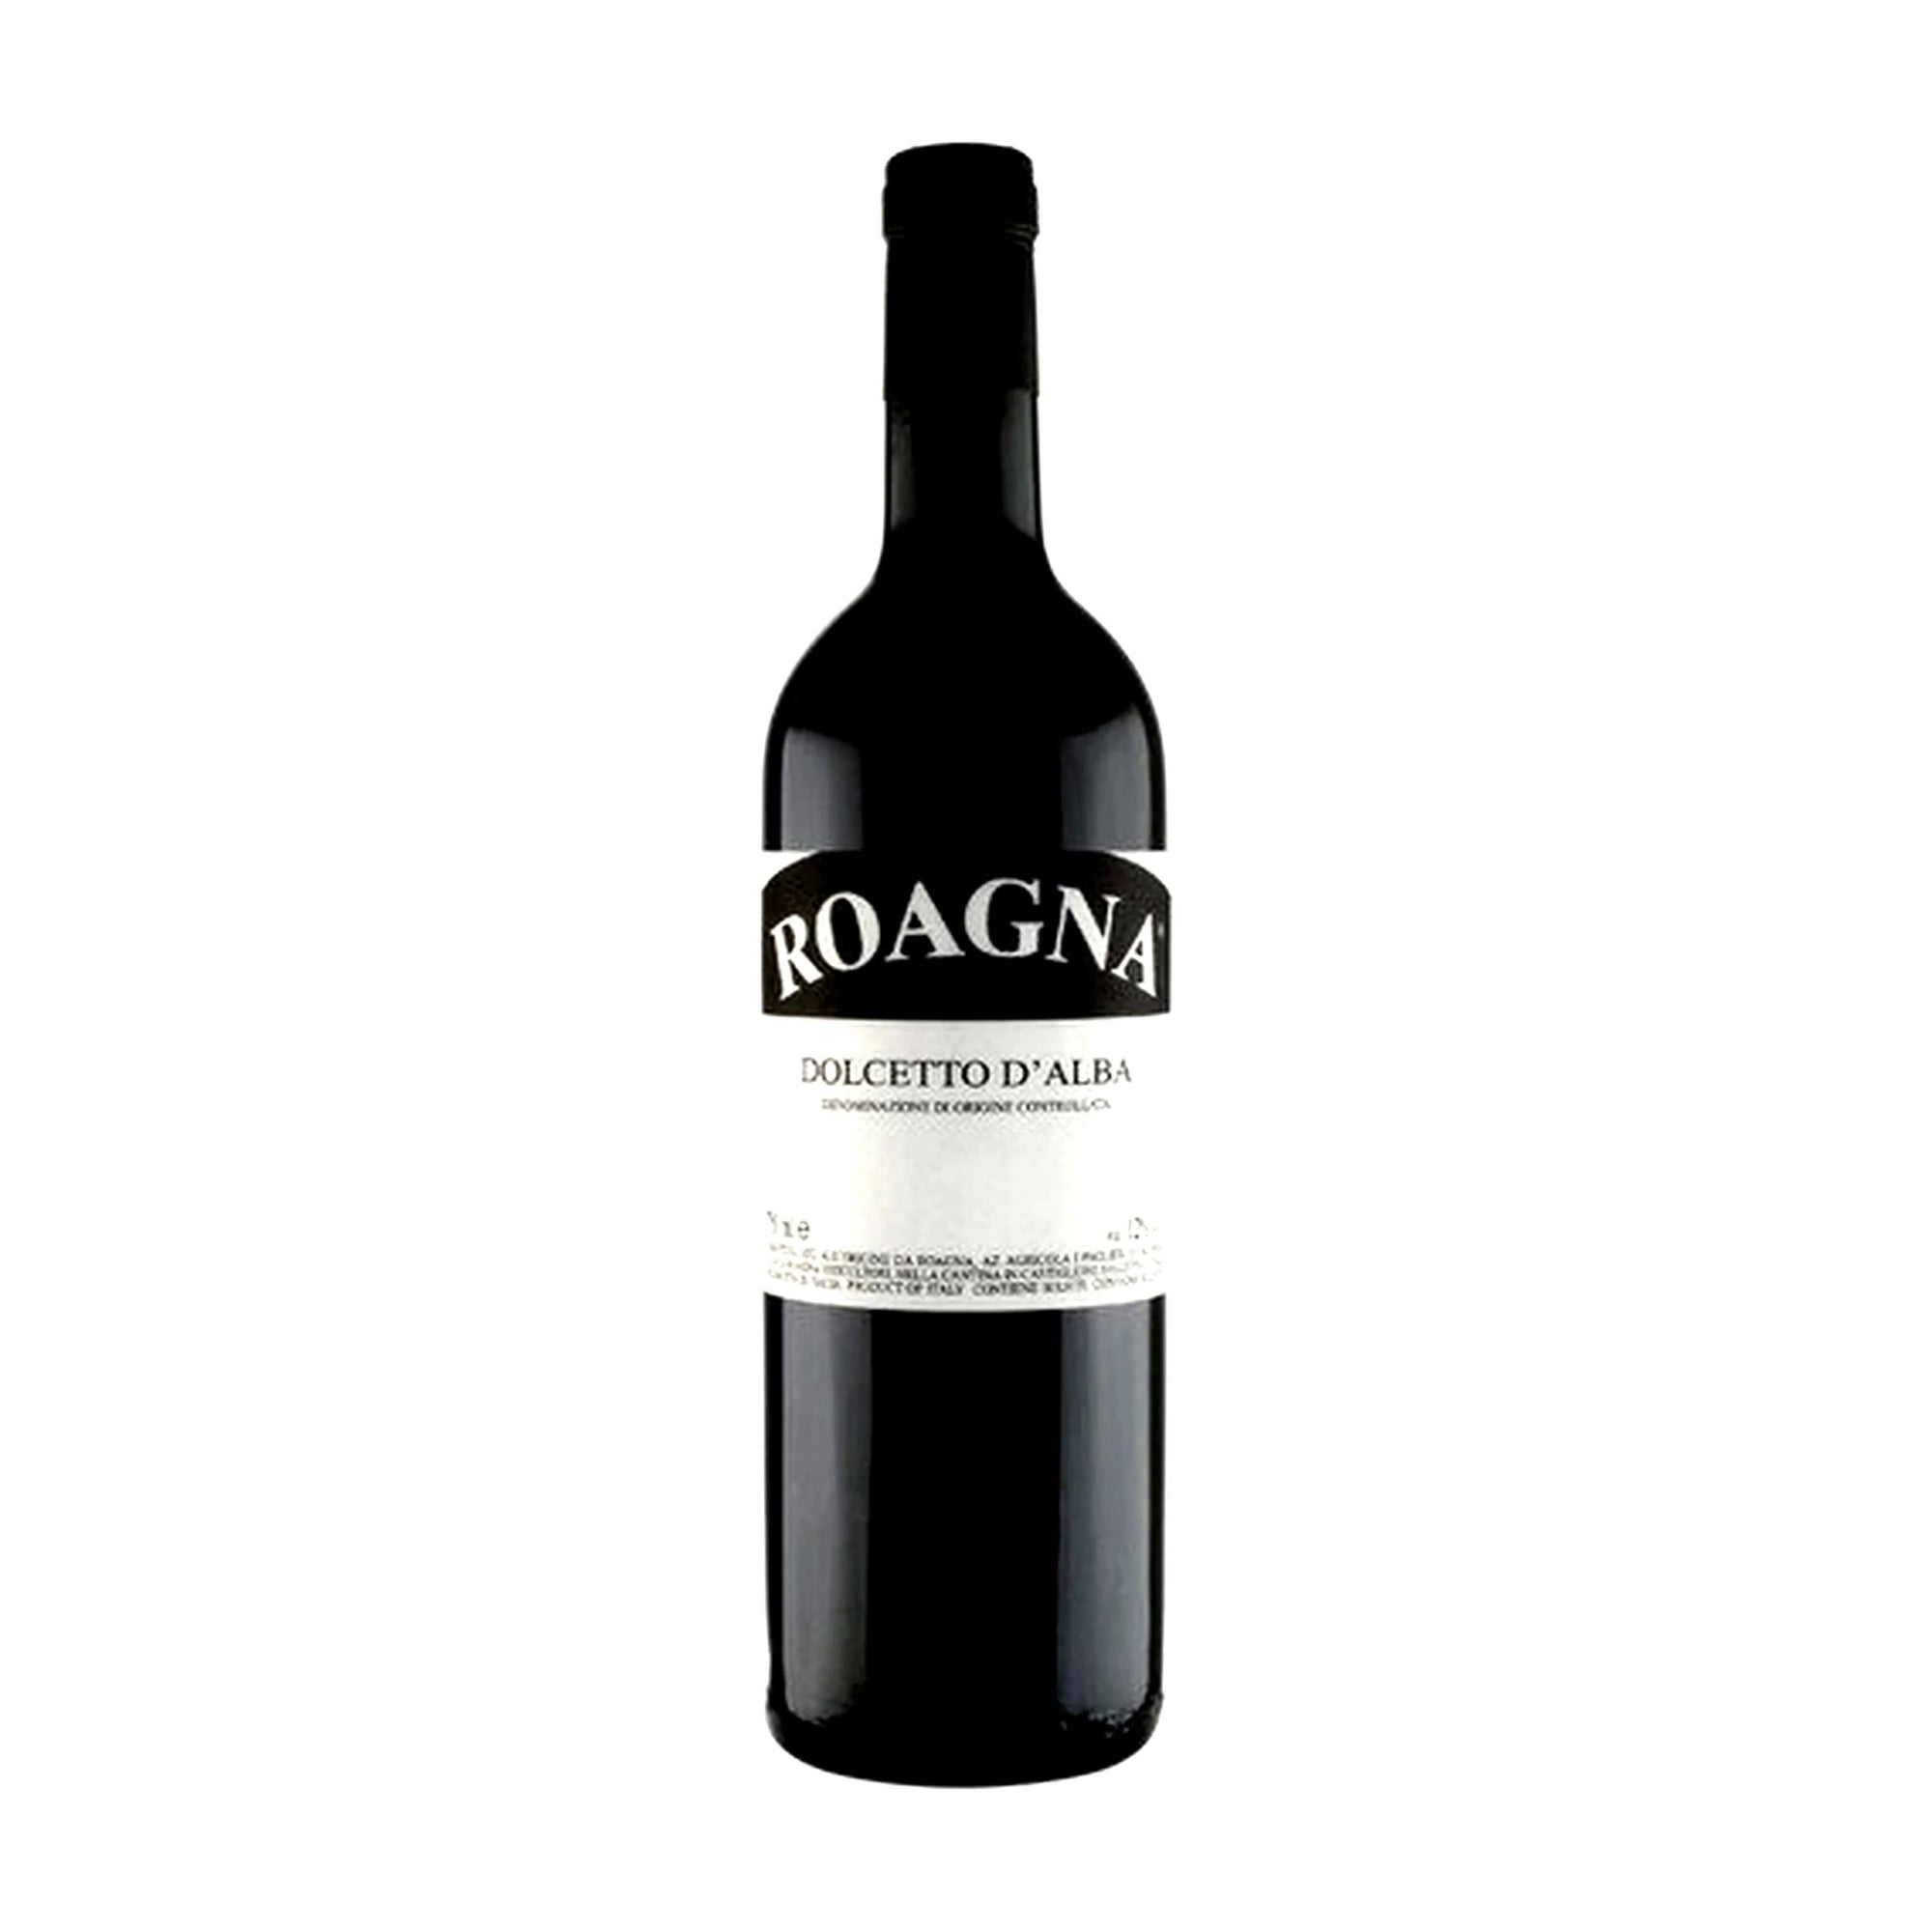 Red Wine Roagna Dolcetto d'Alba 2017 (4401185194007)